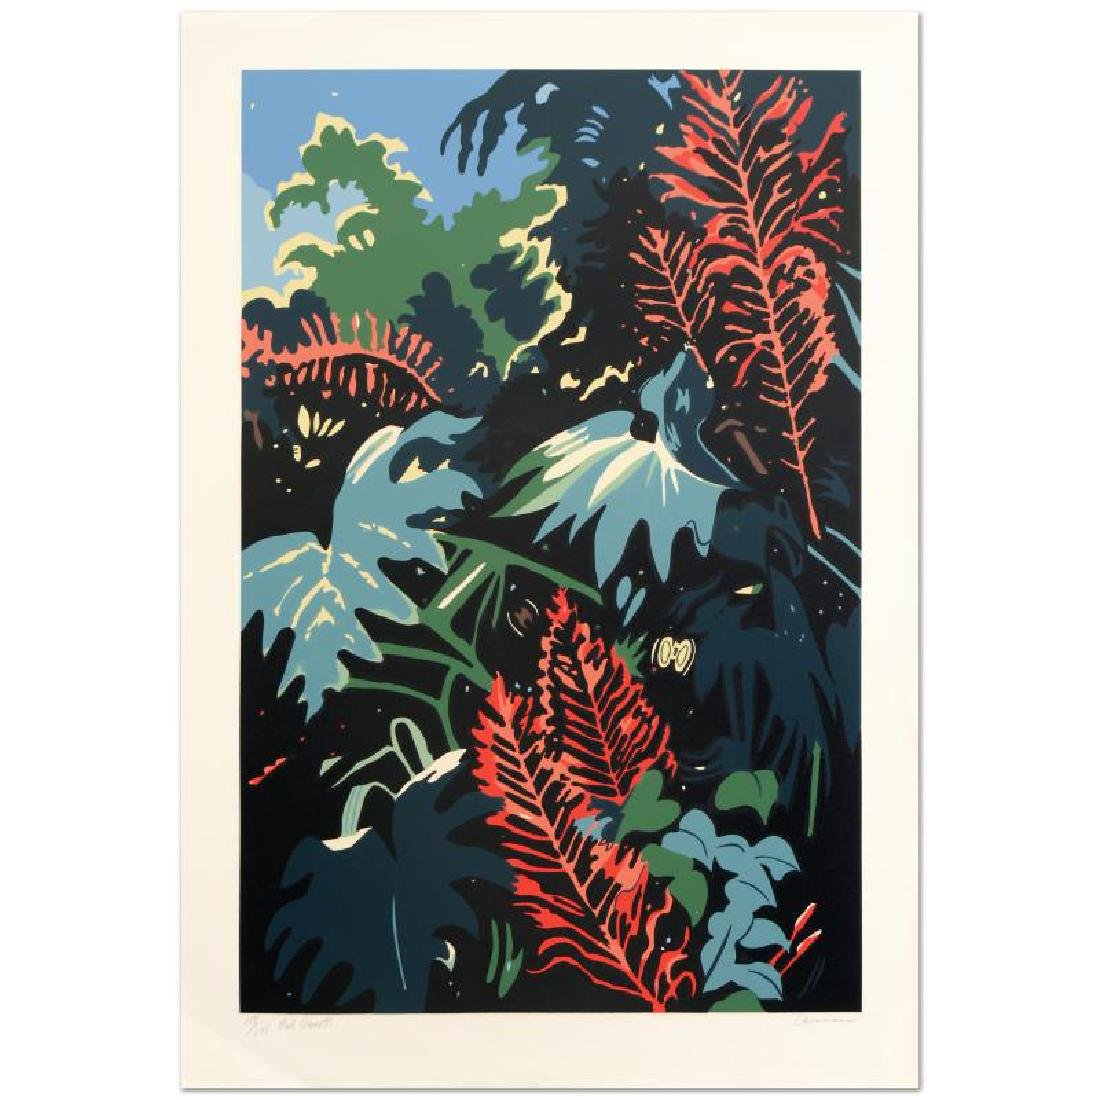 Red Bursts by Carsman (1944-1987)